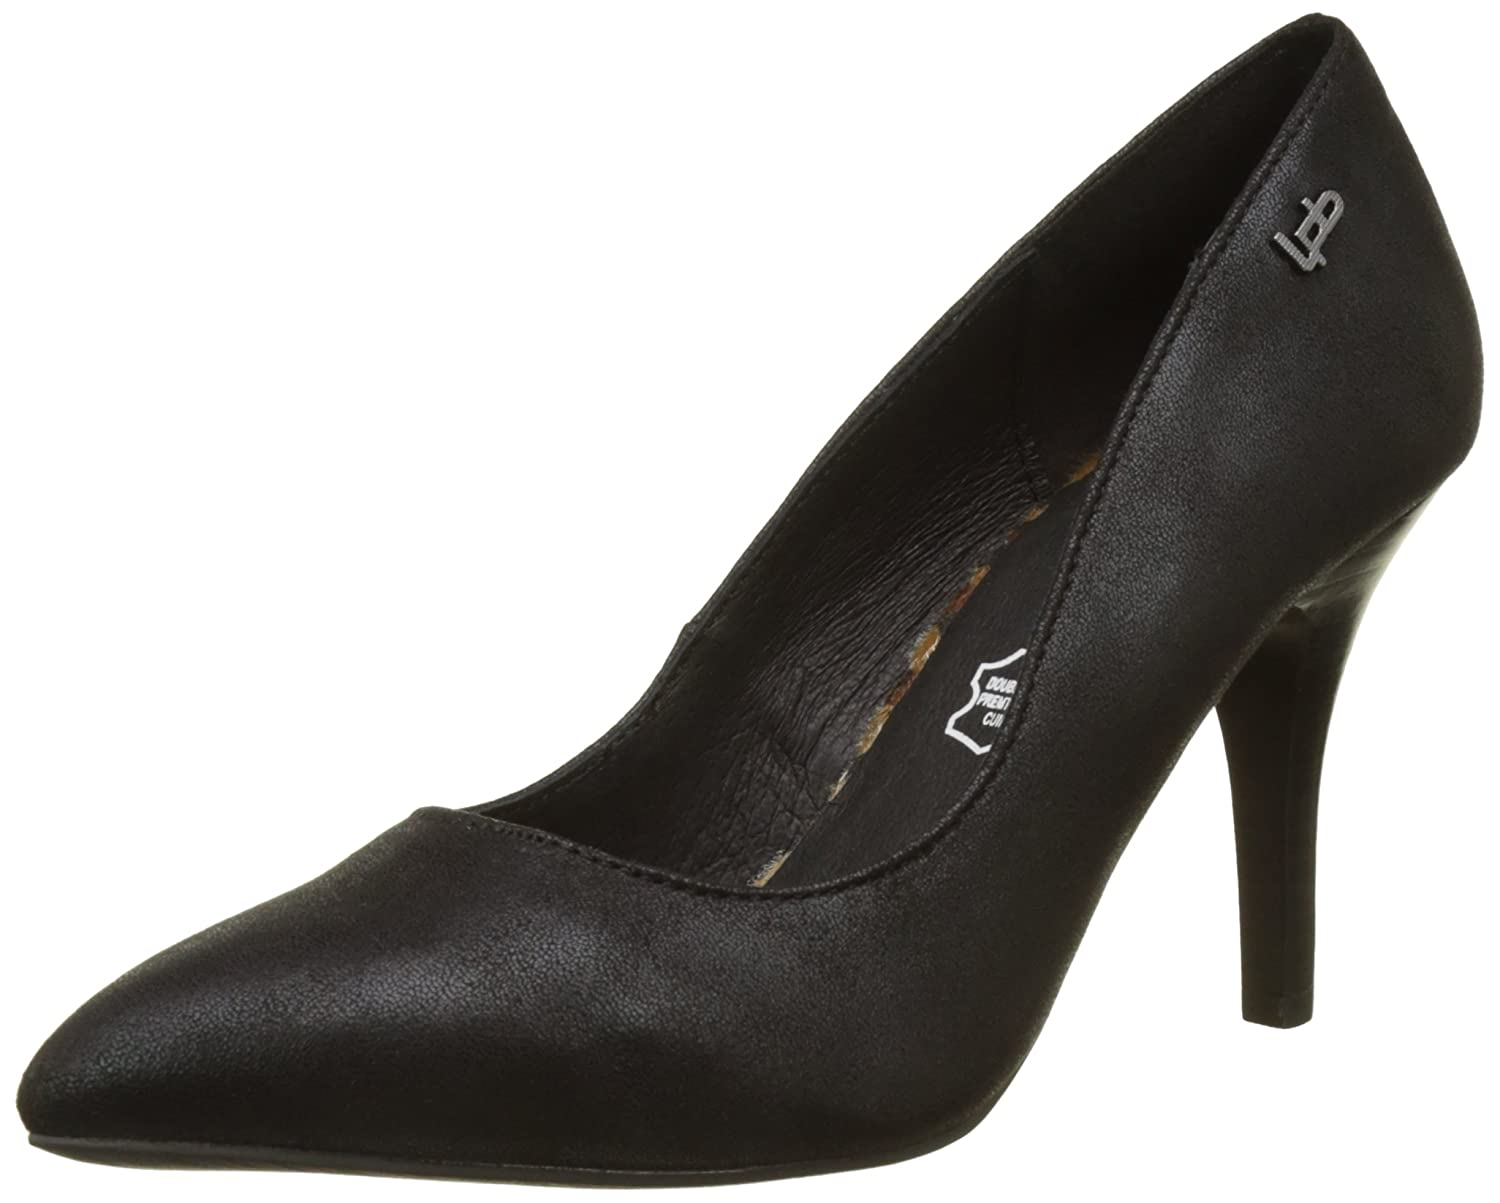 Arianne, Womens Closed-Toe Pumps Les P'tites Bombes